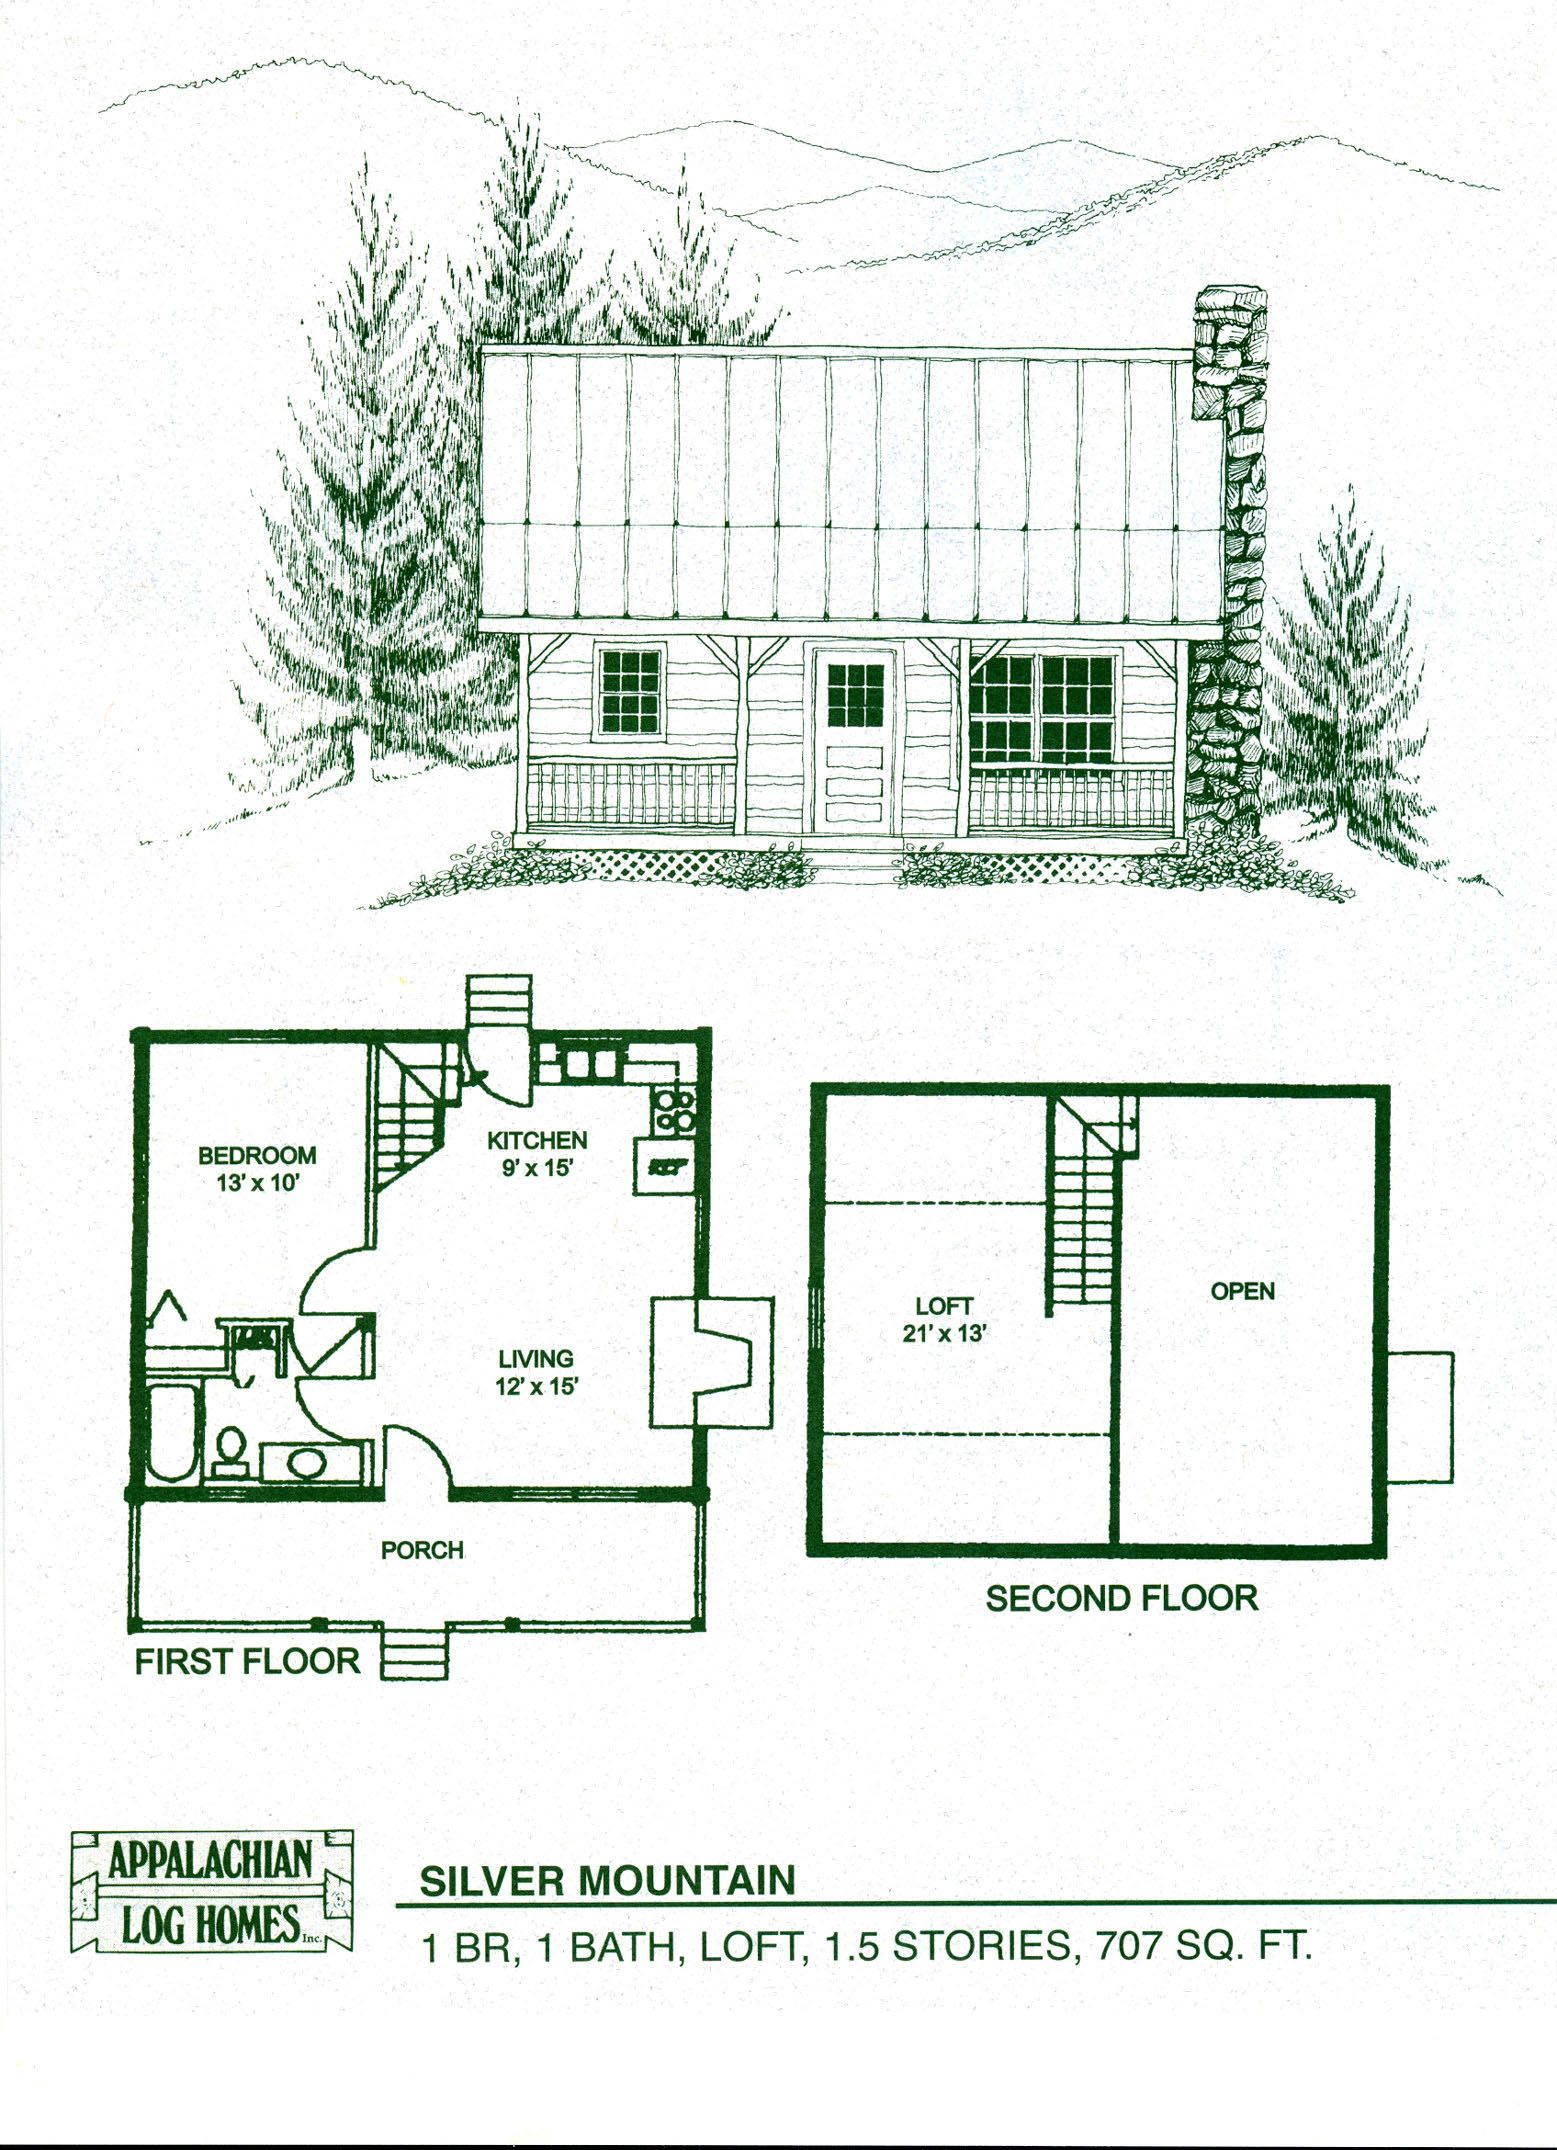 cabin plans small house floor log simple with loft lrg simple small house floor plans with loft lrg cabin simple cabin floor plans small house lrg with - Tiny House Floor Plans Cabins